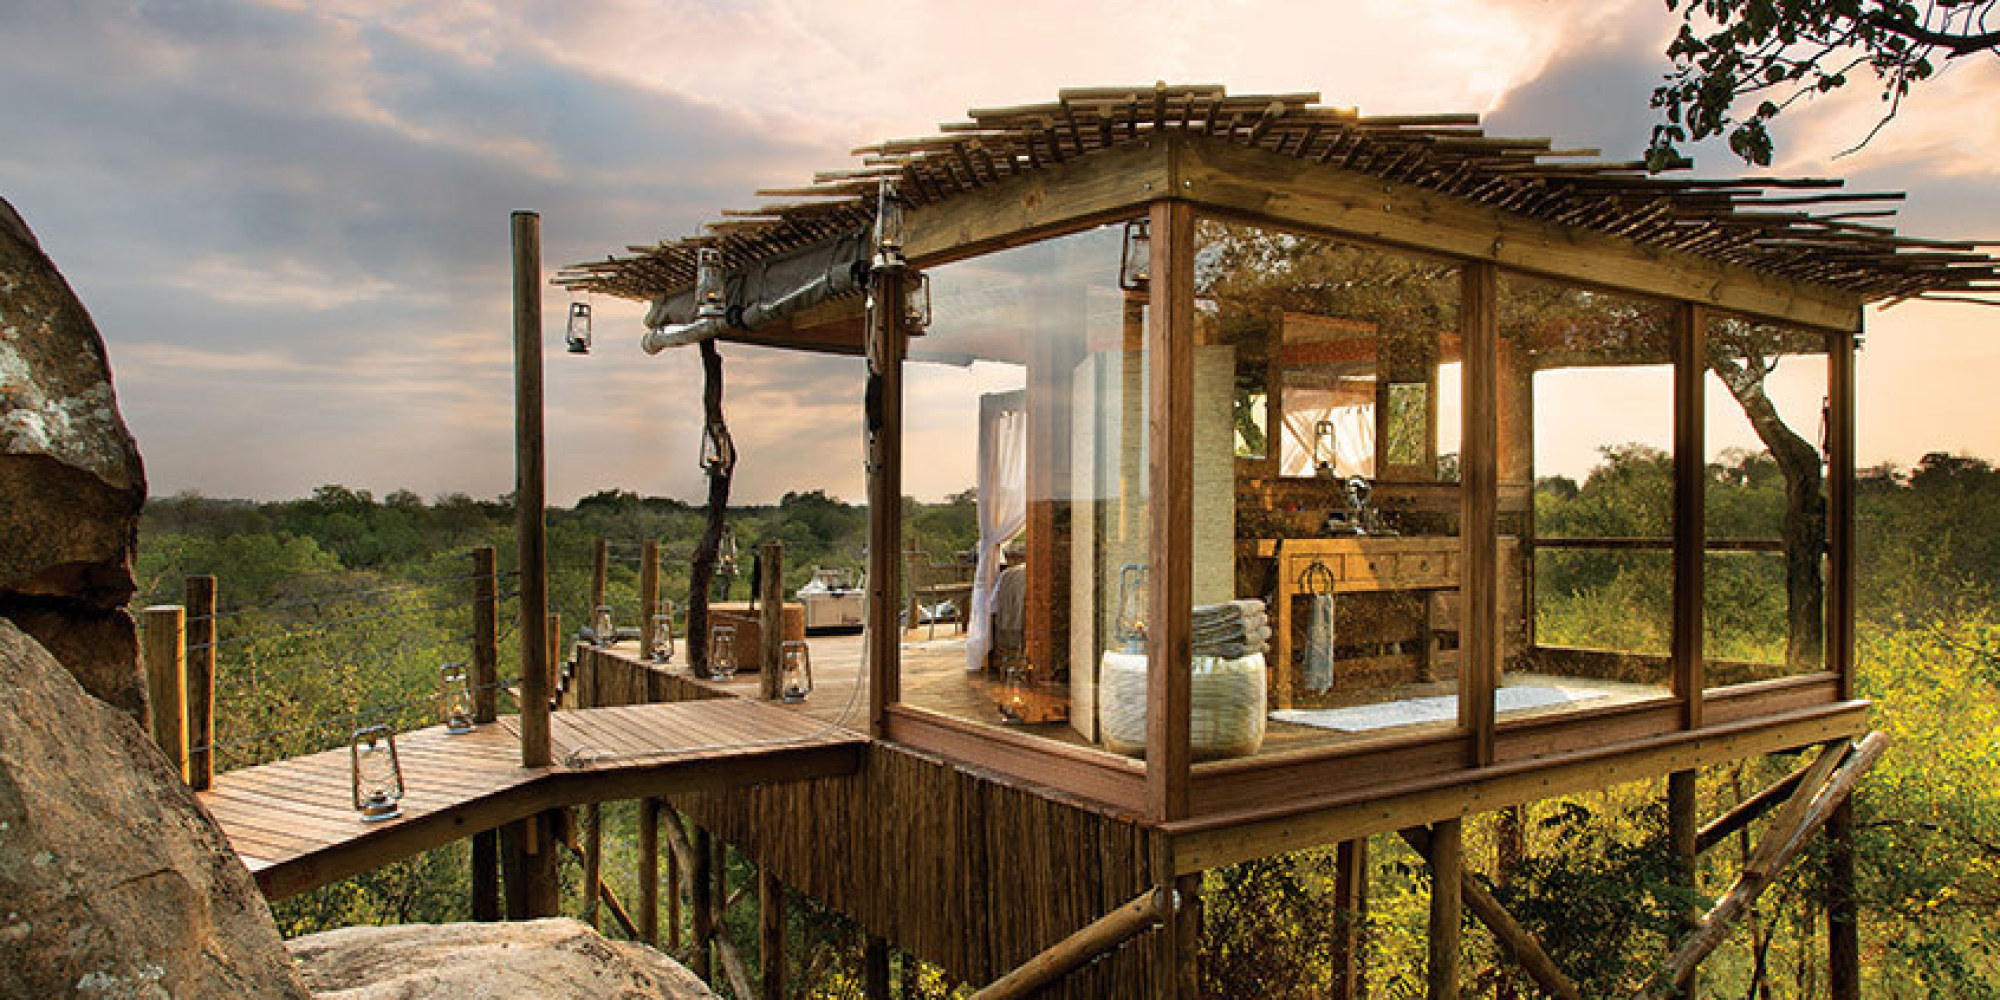 These Incredible Hotel Bathrooms Will Leave You With Serious